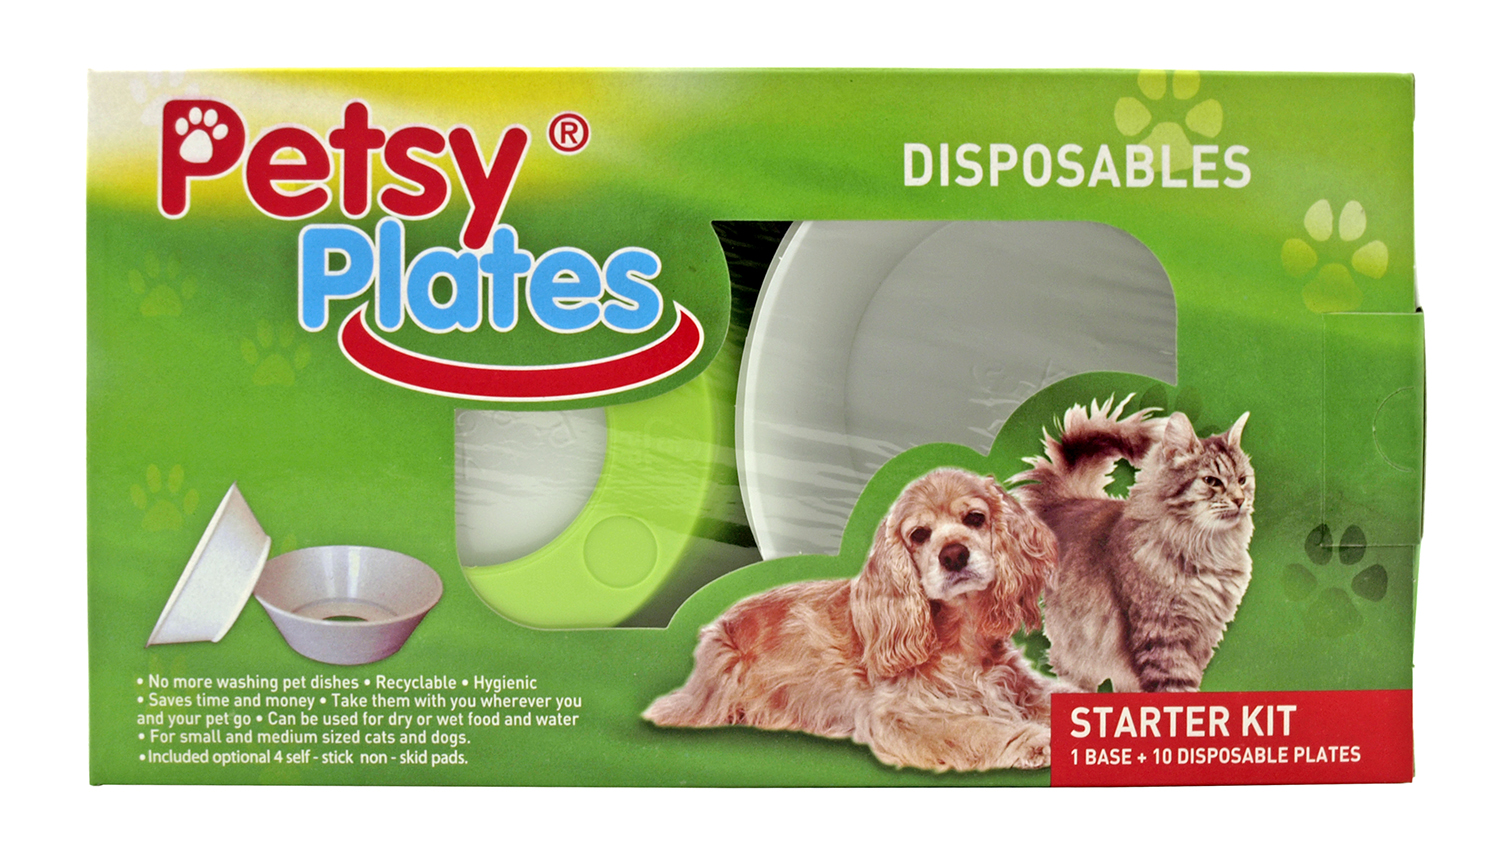 Petsy Plates Disposable Cat or Dog Food and Water Dishes with Bowl Base